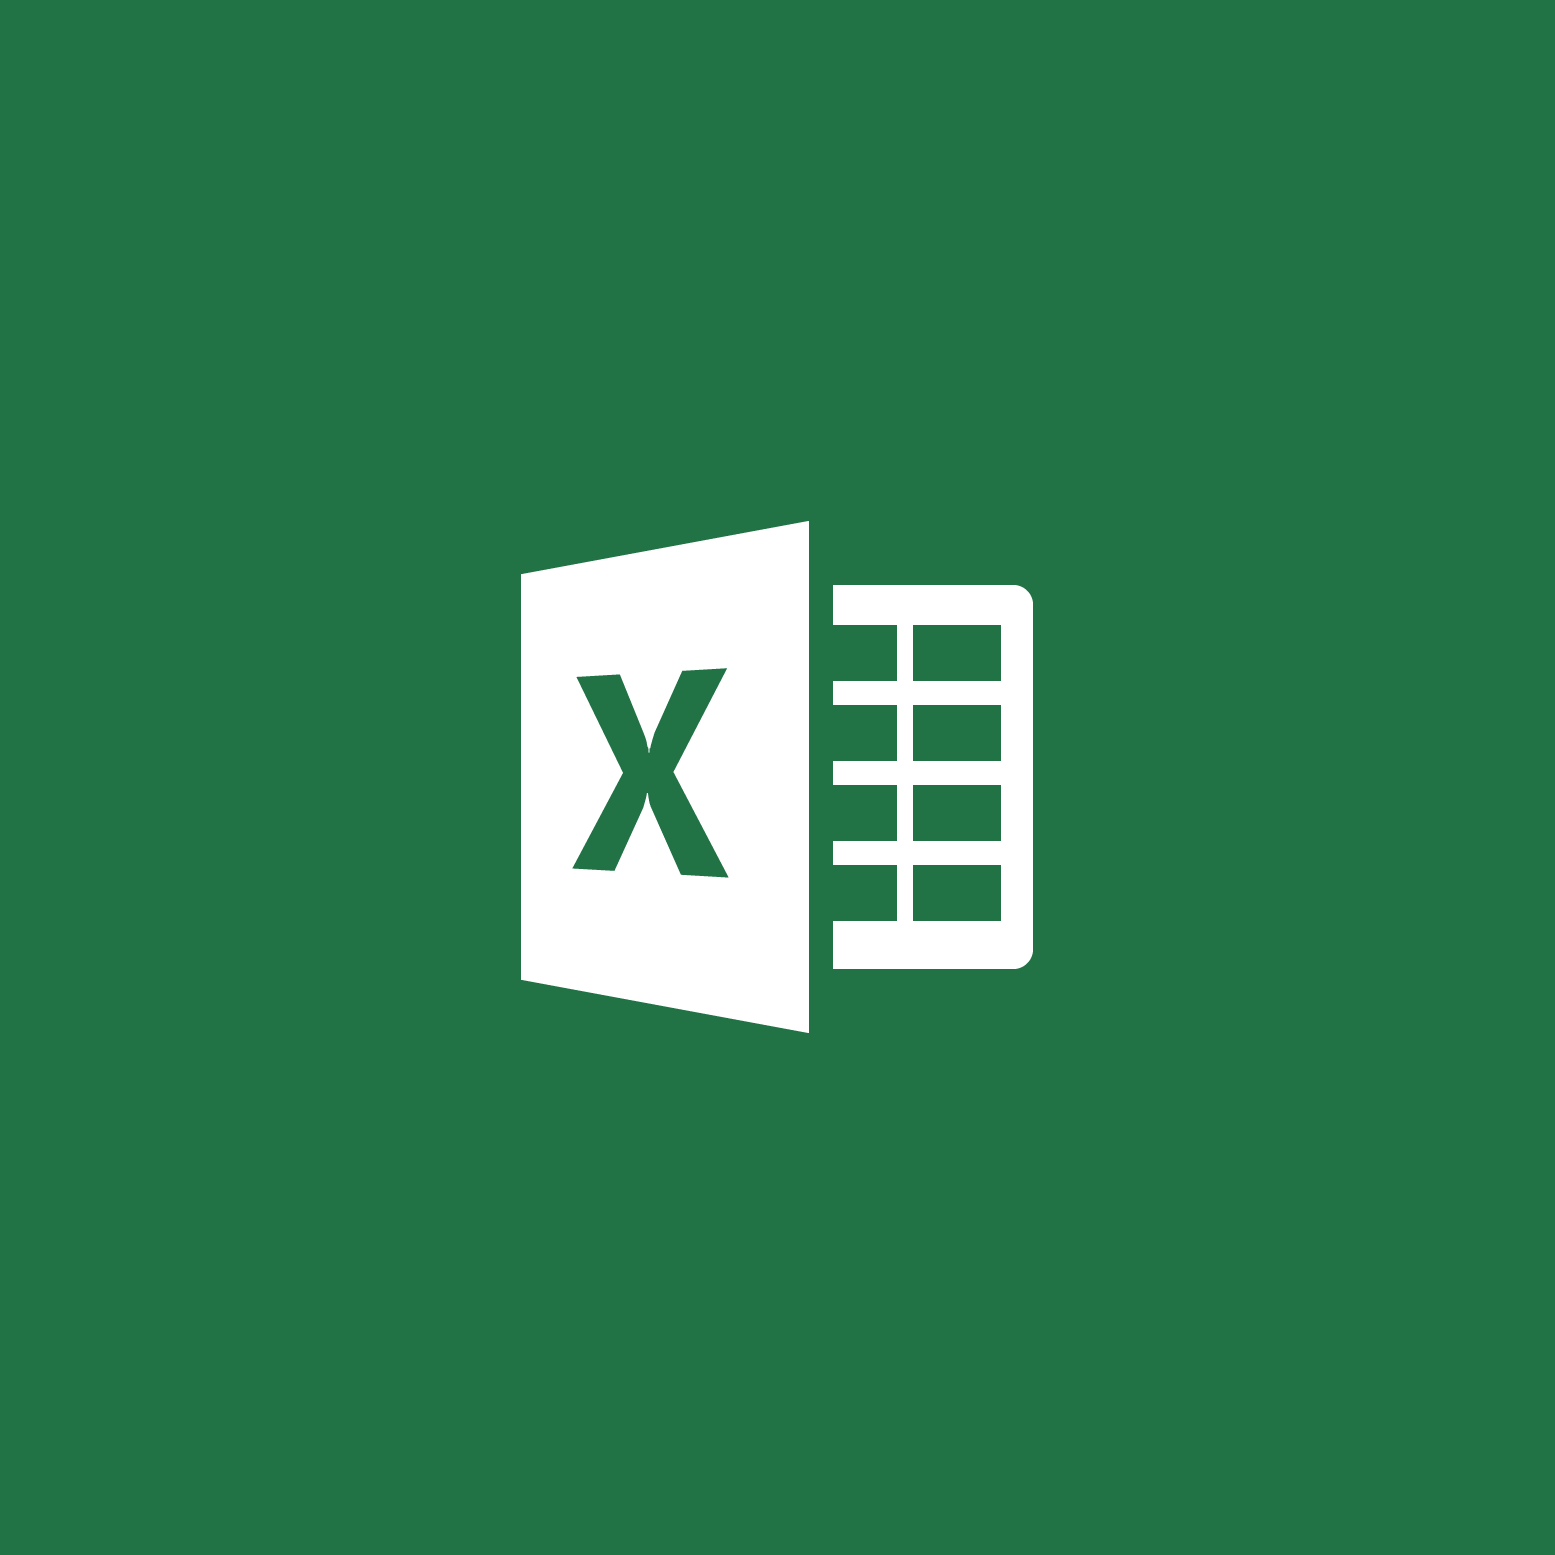 Excel Home and Student